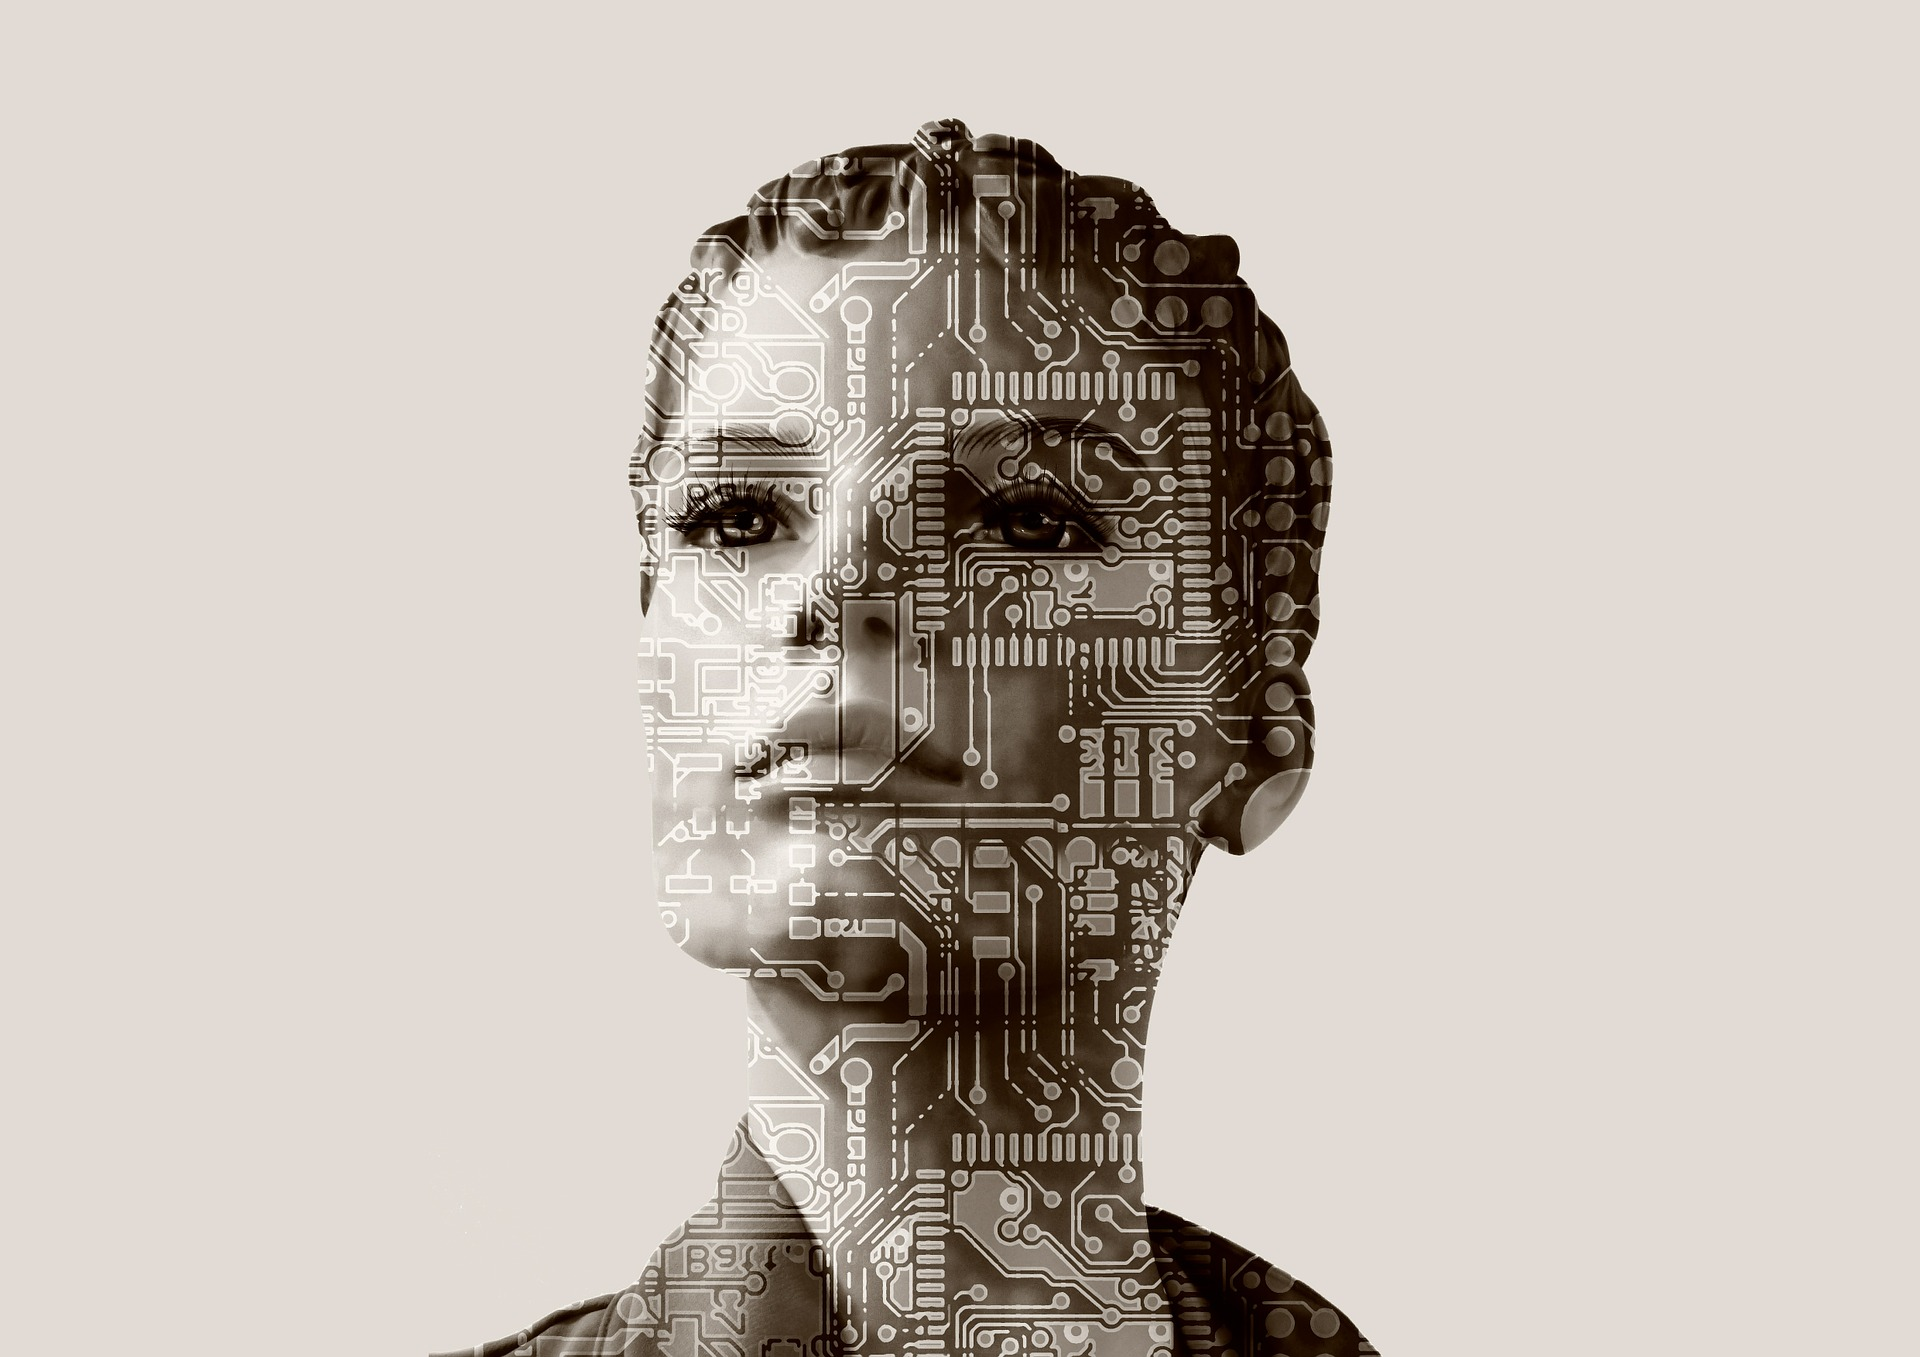 Bank of England Will Monitor AI Performance